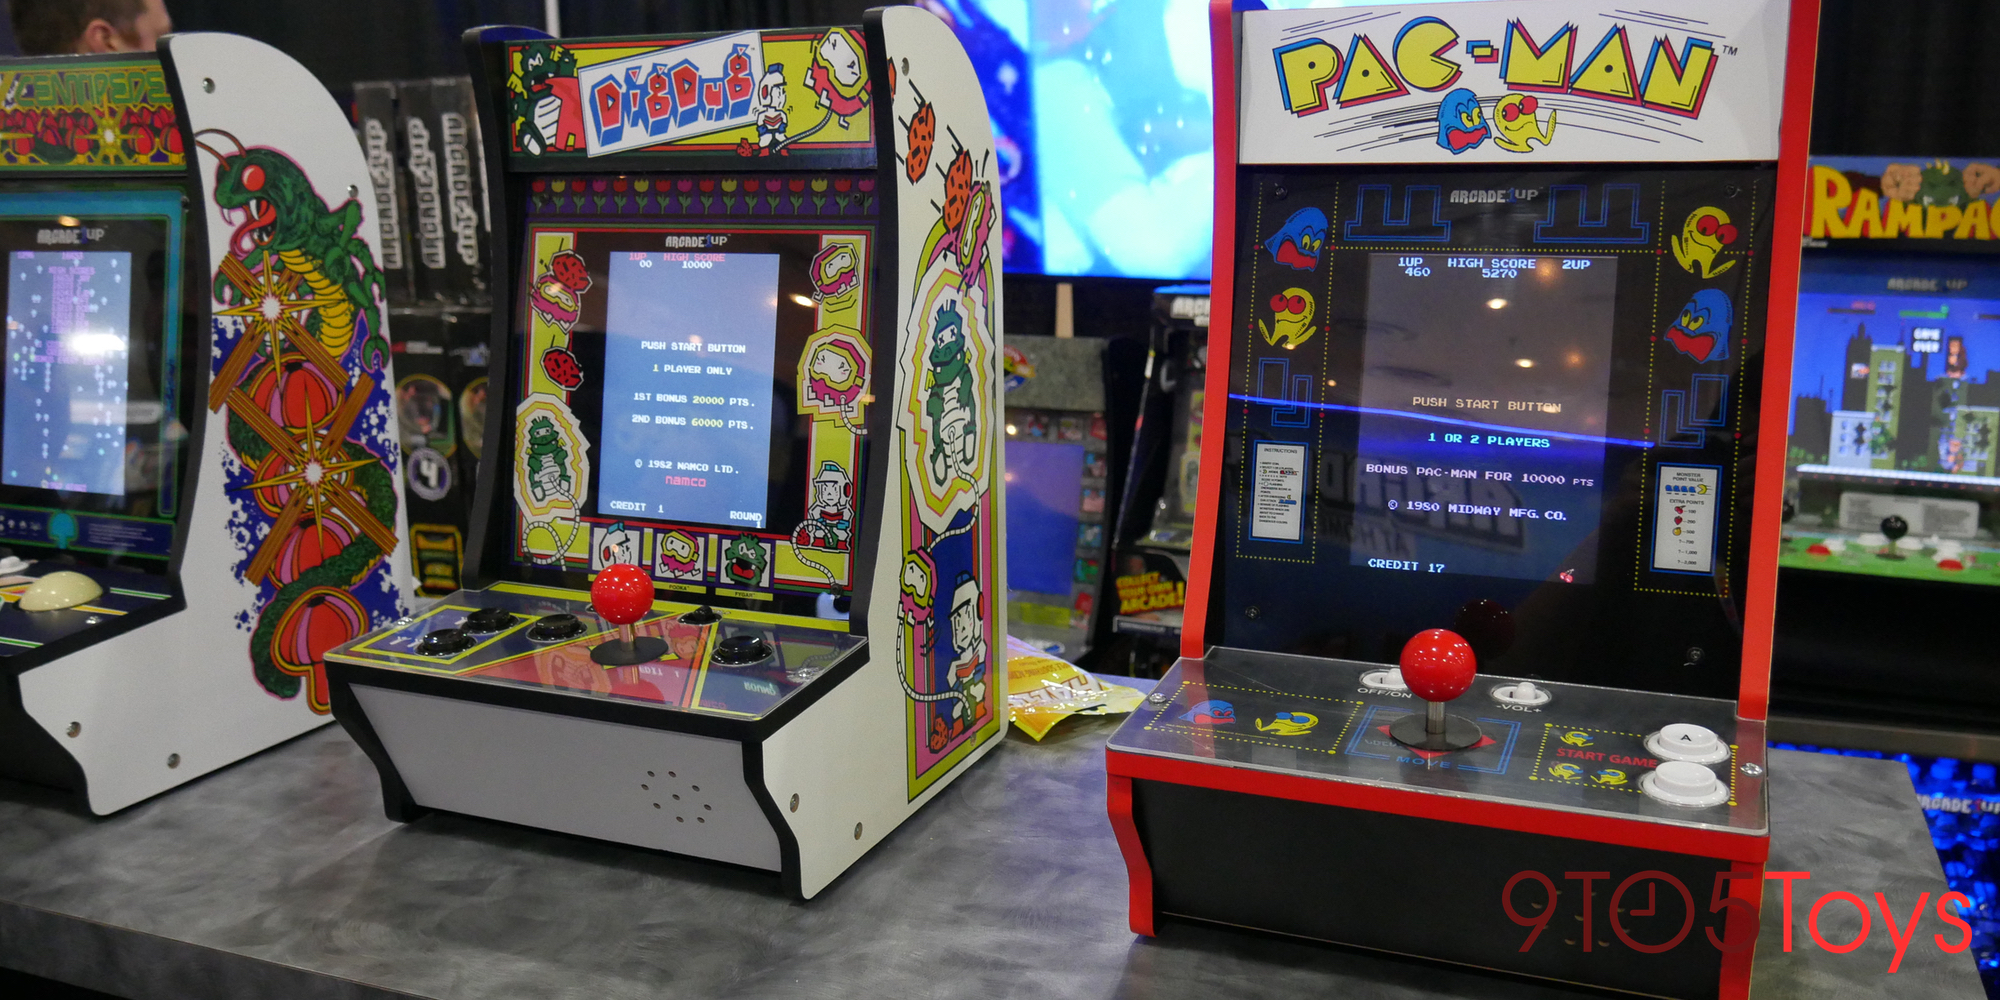 Arcade1Up Toy Fair unveils new cabinets, merch and more